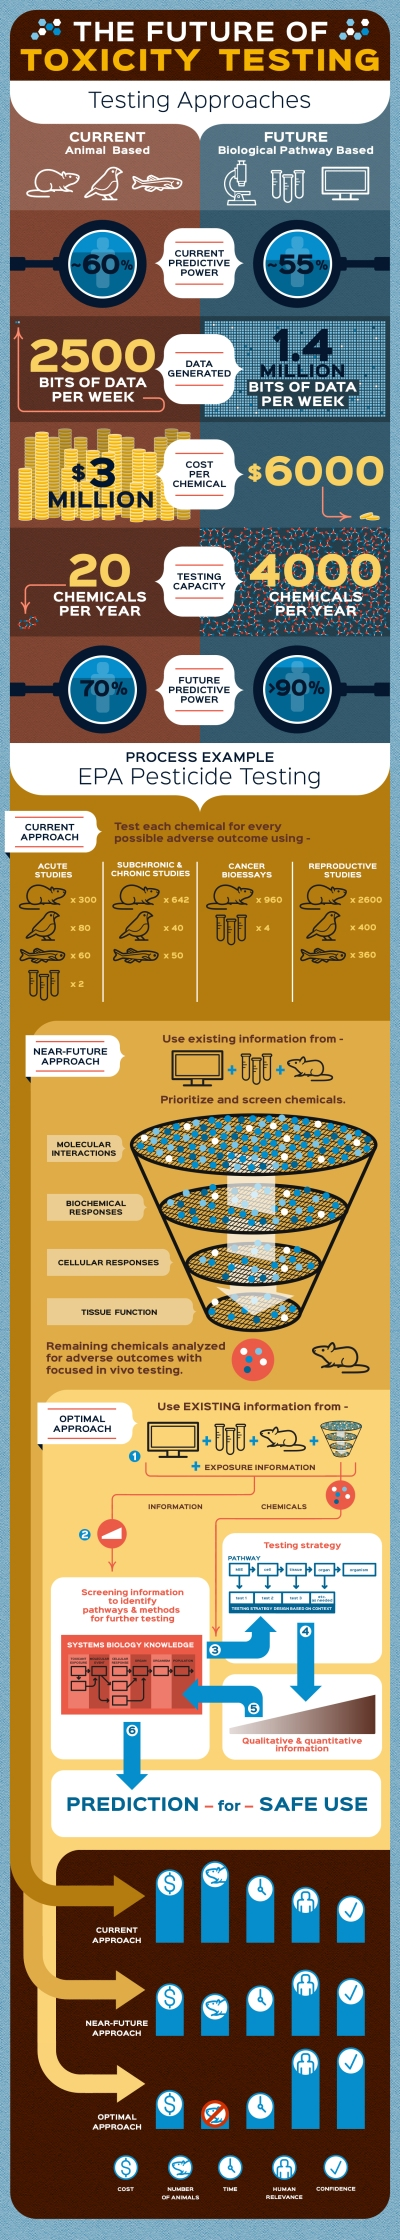 HTP_infographic_FINAL_revised